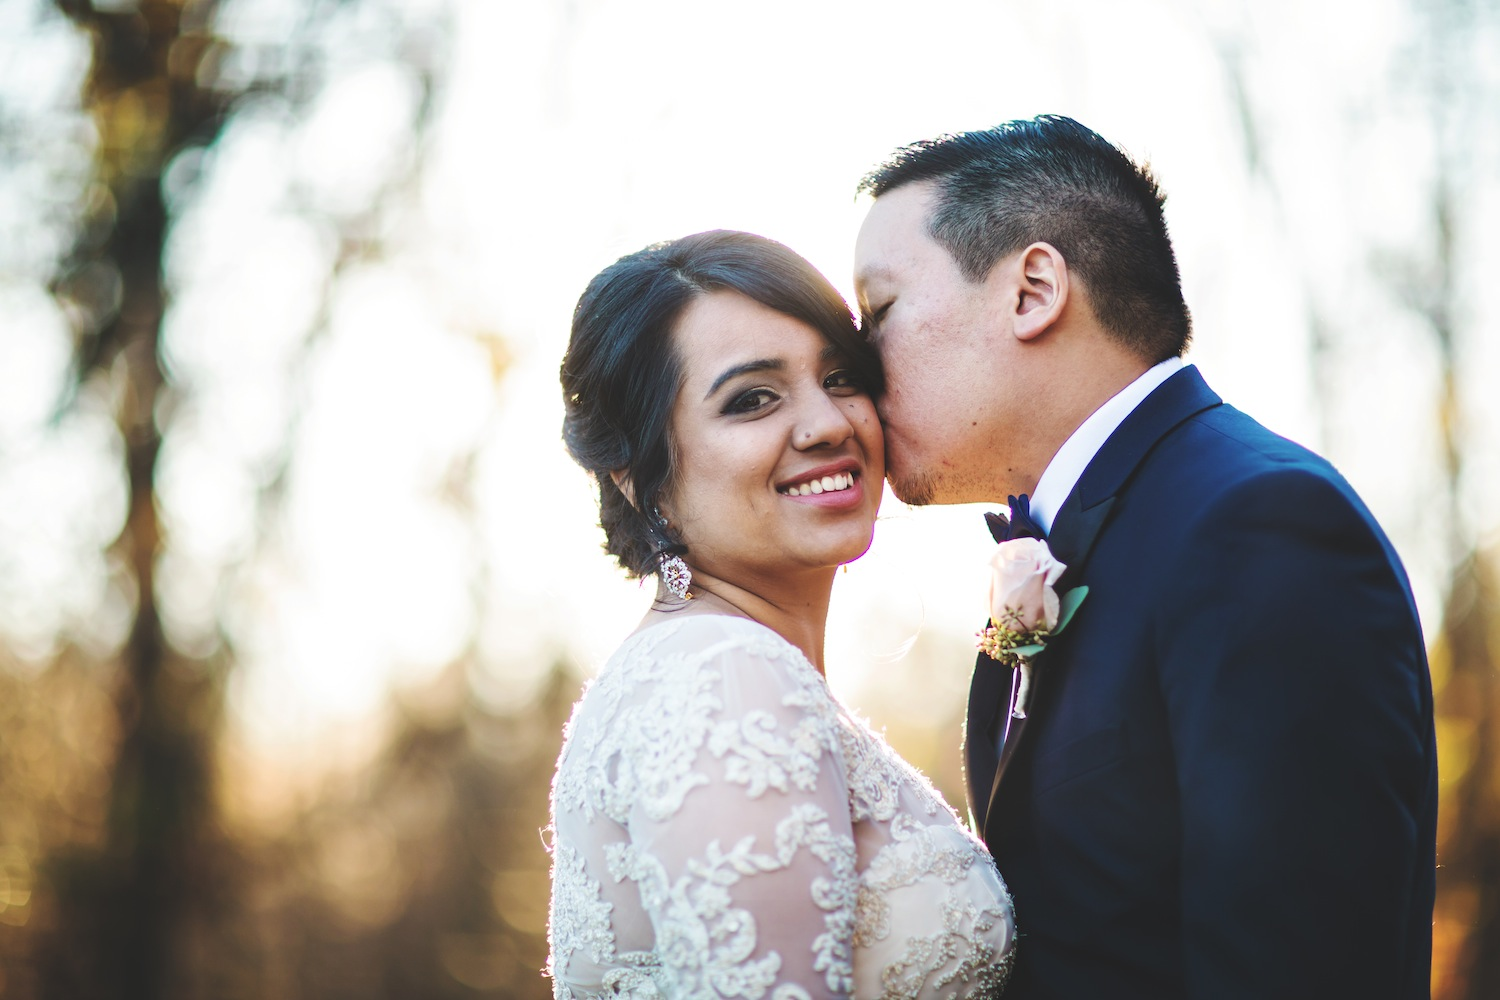 Kamana and Rob – NJ Wedding Photography Highlights from Hamilton Manor in Hamilton Township